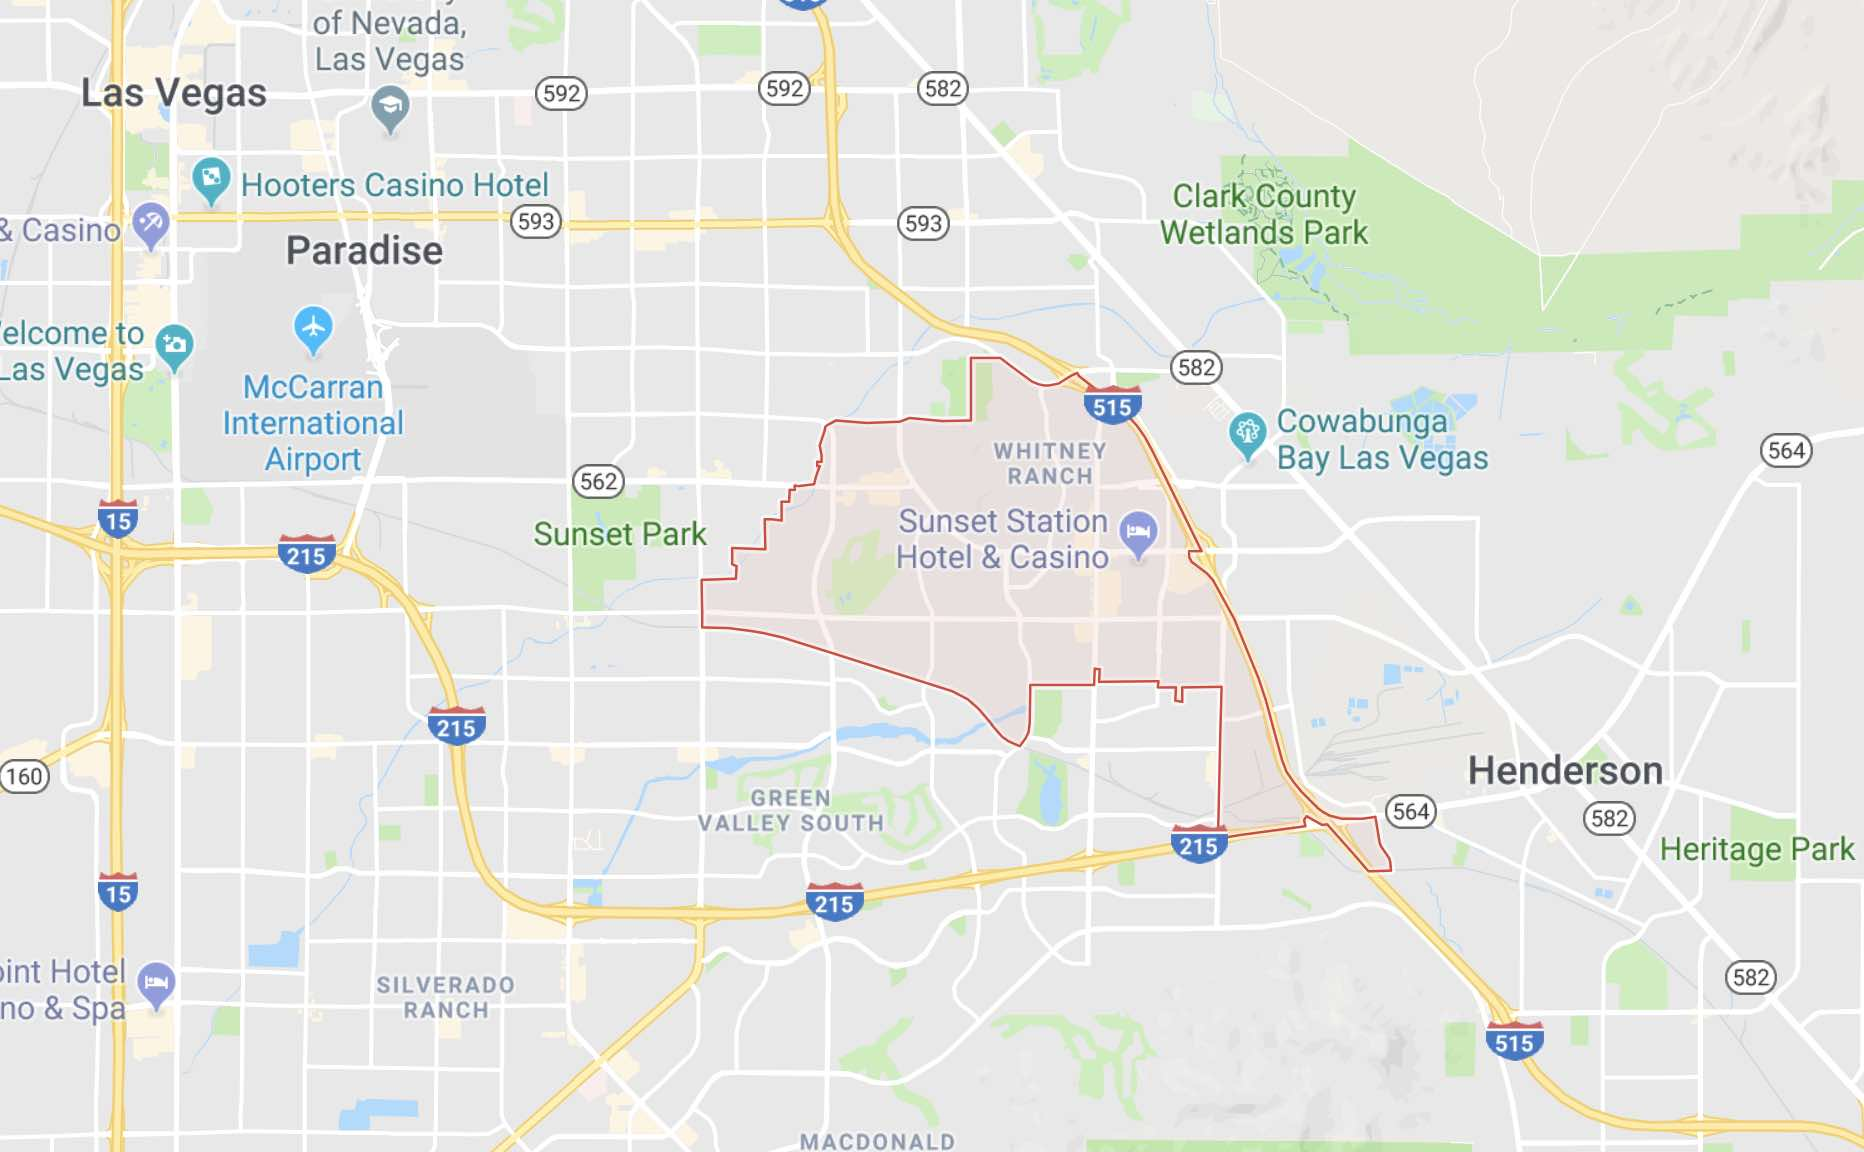 89014 zip code map is outlined on a city map